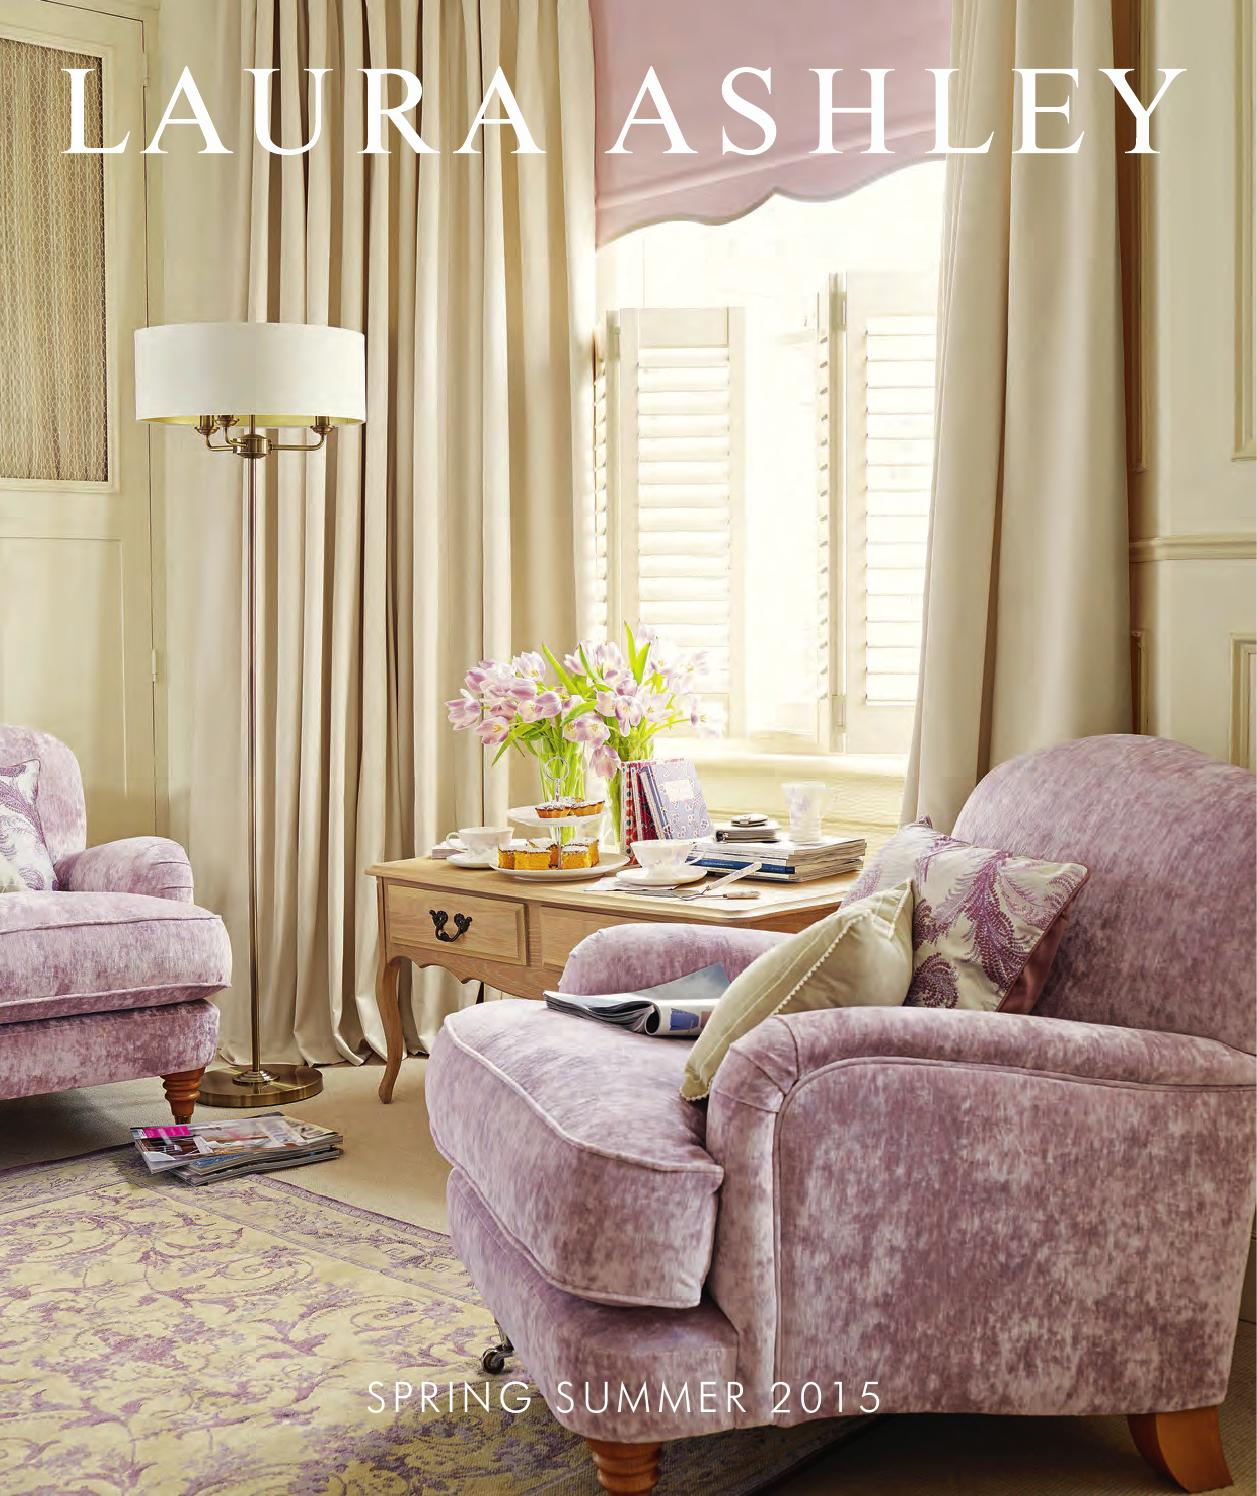 laura ashley - photo #10